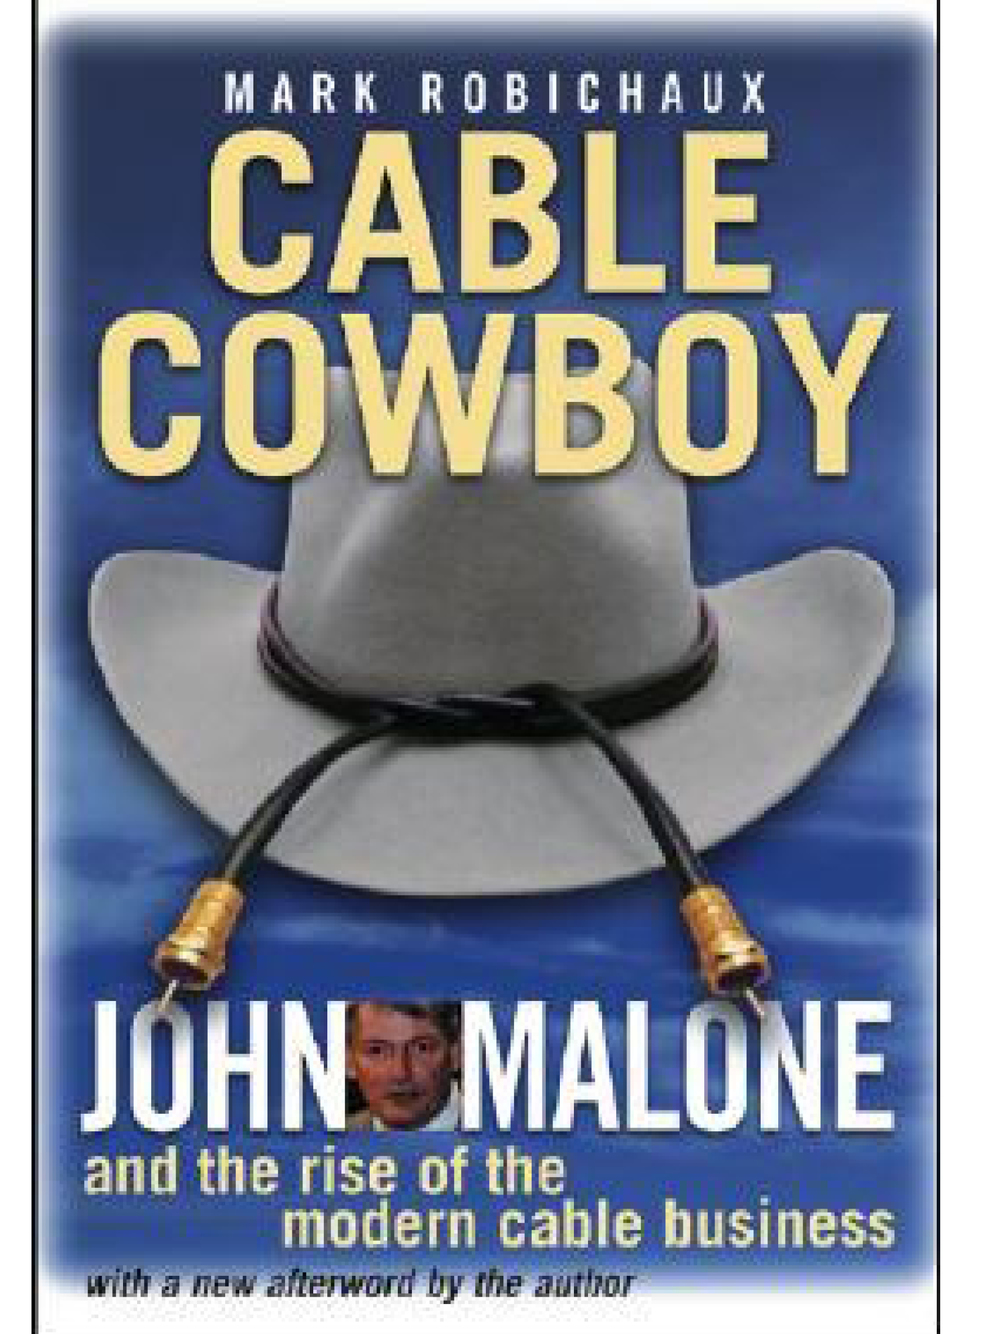 Cable Cowboy: John Malone and the Rise of the Modern Cable Business Mark Robichaux 2002